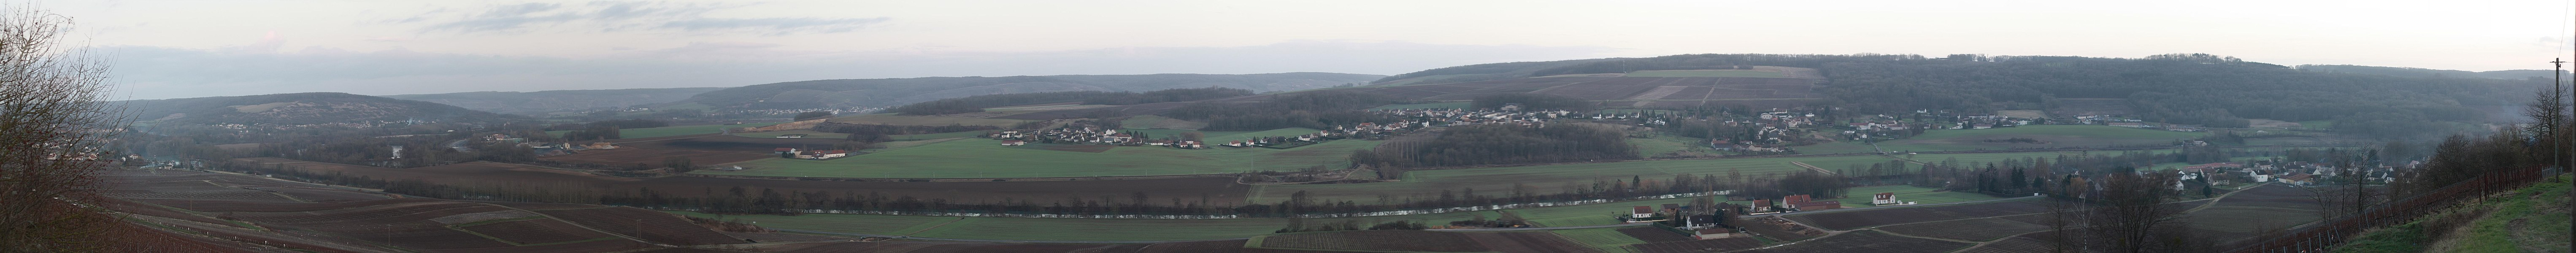 Panoramic view of river Marne valley in Gland, Aisne, France.